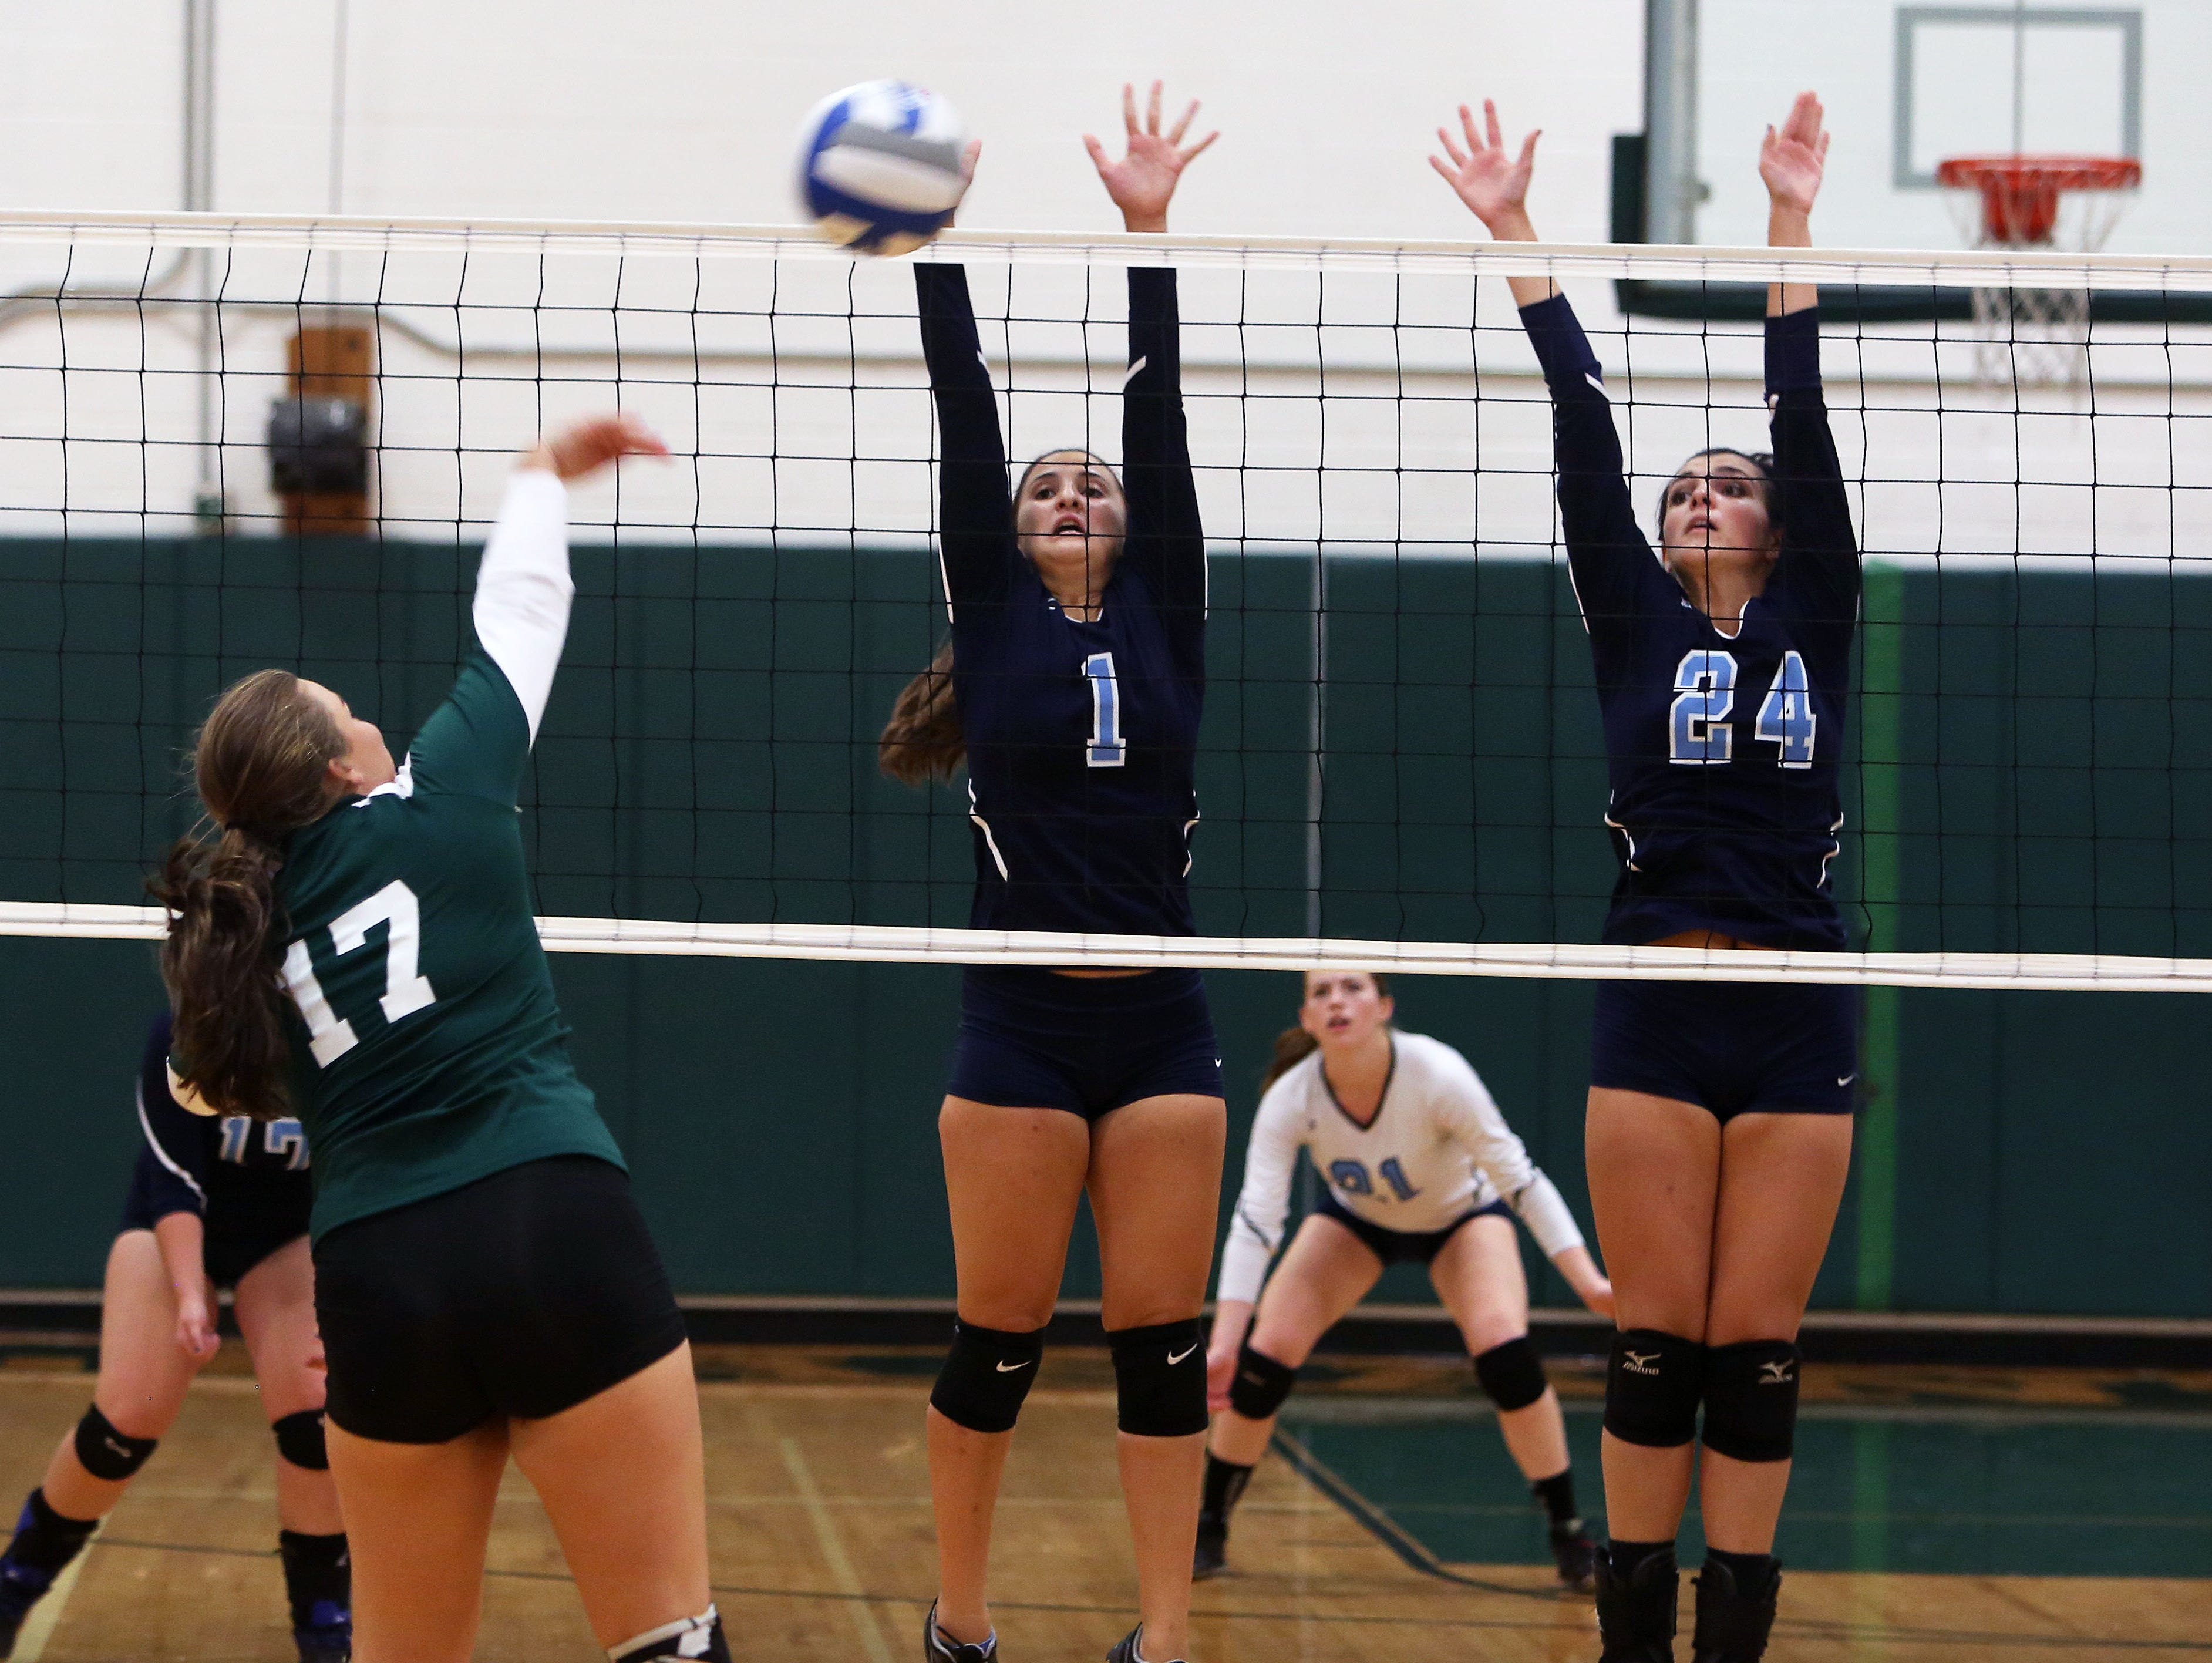 From right, Westlake's Kelly Martin (24) and Angelina Guarnieri (1) combine to stop a shot by Pleasantville's Isabelle Minerva (17) during volleyball action at Pleasantville High School Sept. 30, 2015.